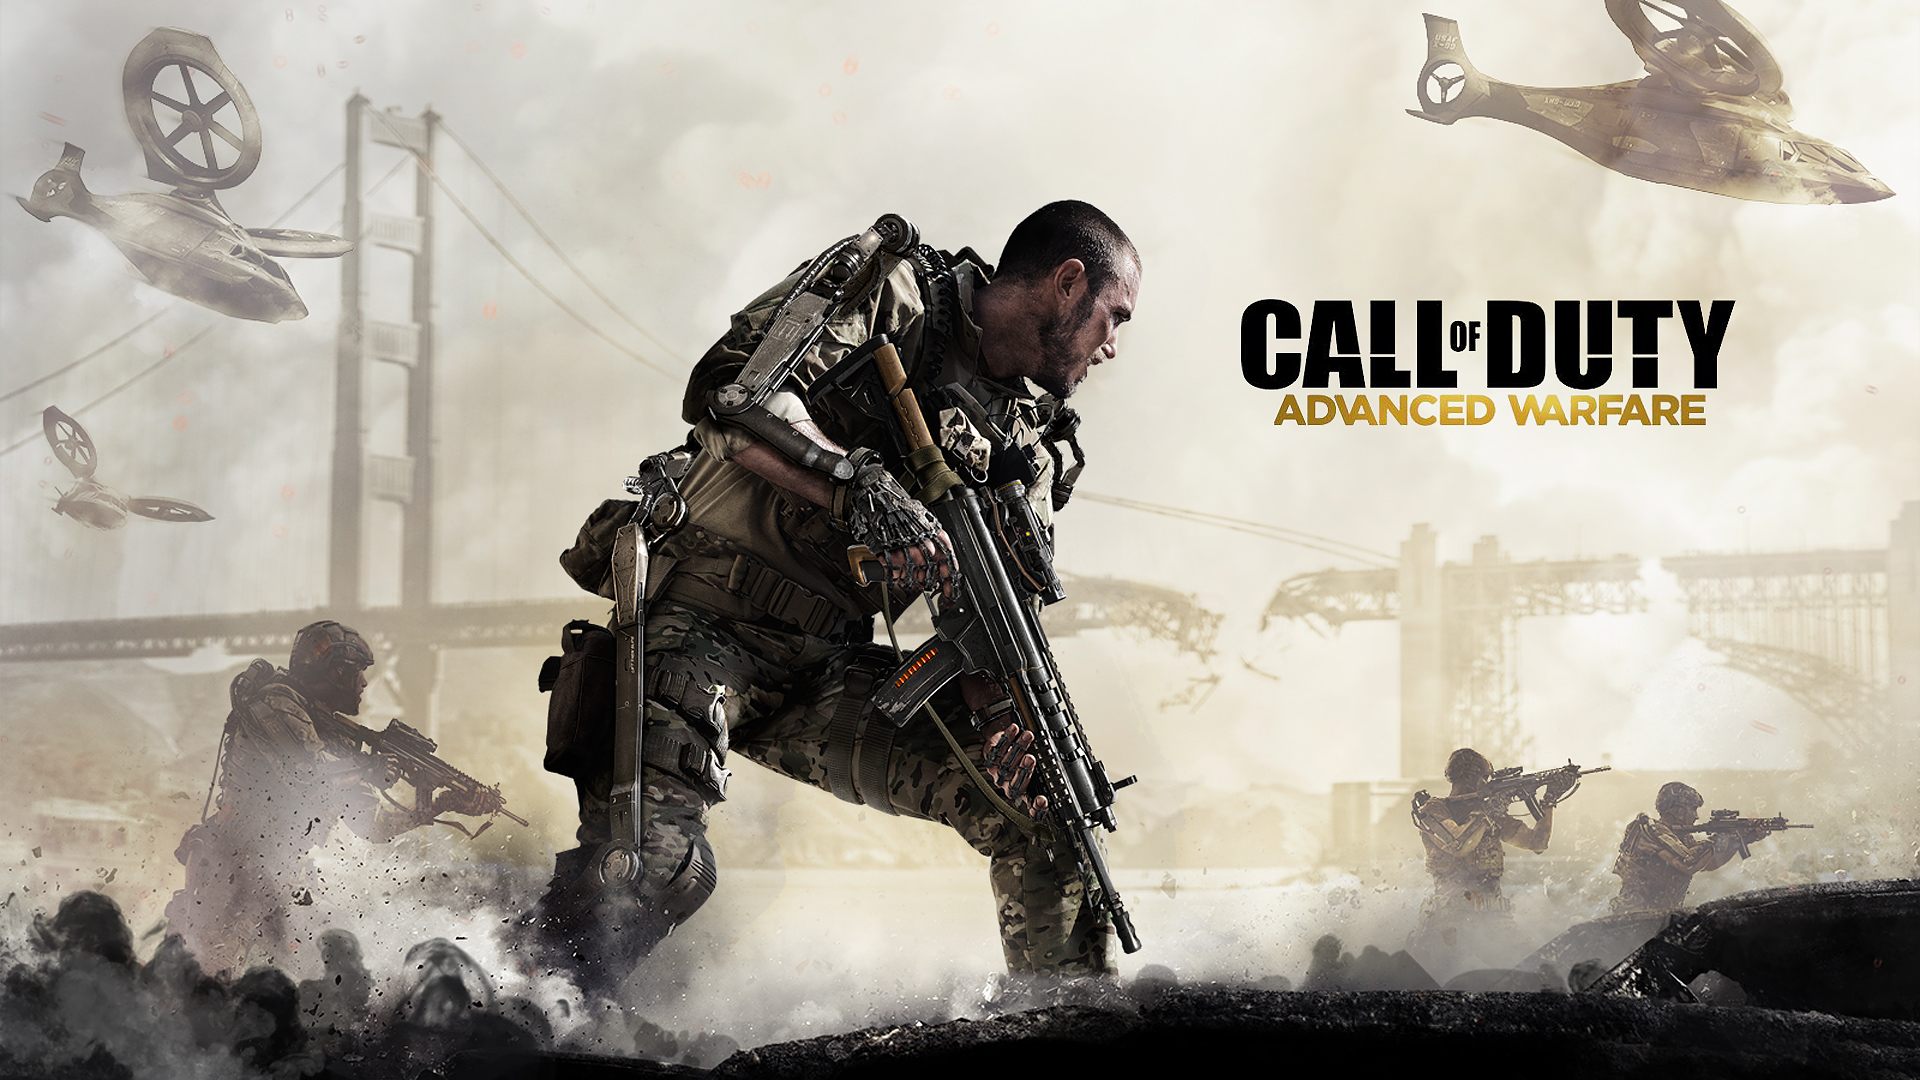 Watch the Call of Duty Advanced Warfare Power Changes Everything Trailer